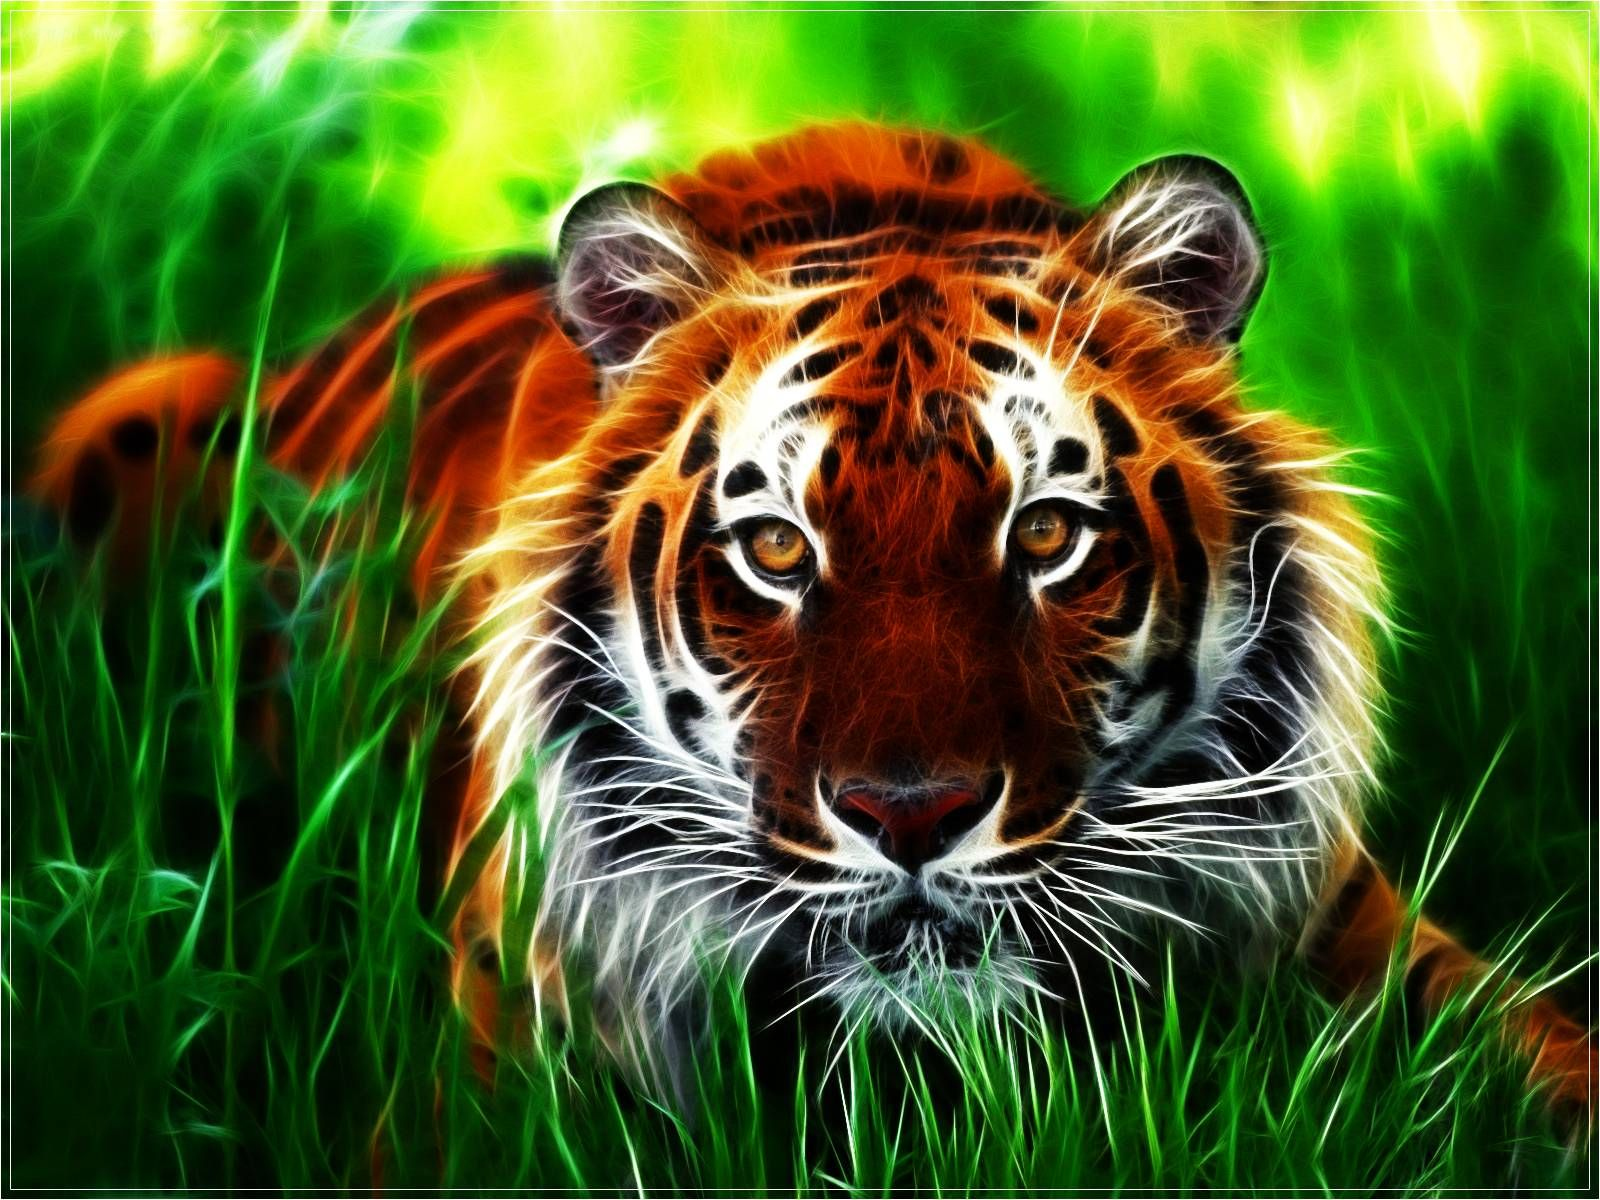 Tiger Hd Wallpaper Tiger Hd Wallpaper Tiger Hd Wallpaper 3d Tiger Hd Wallpaper Downlod Tiger Hd Wallpaper F New Wallpaper Hd Tiger Wallpaper Tiger Artwork